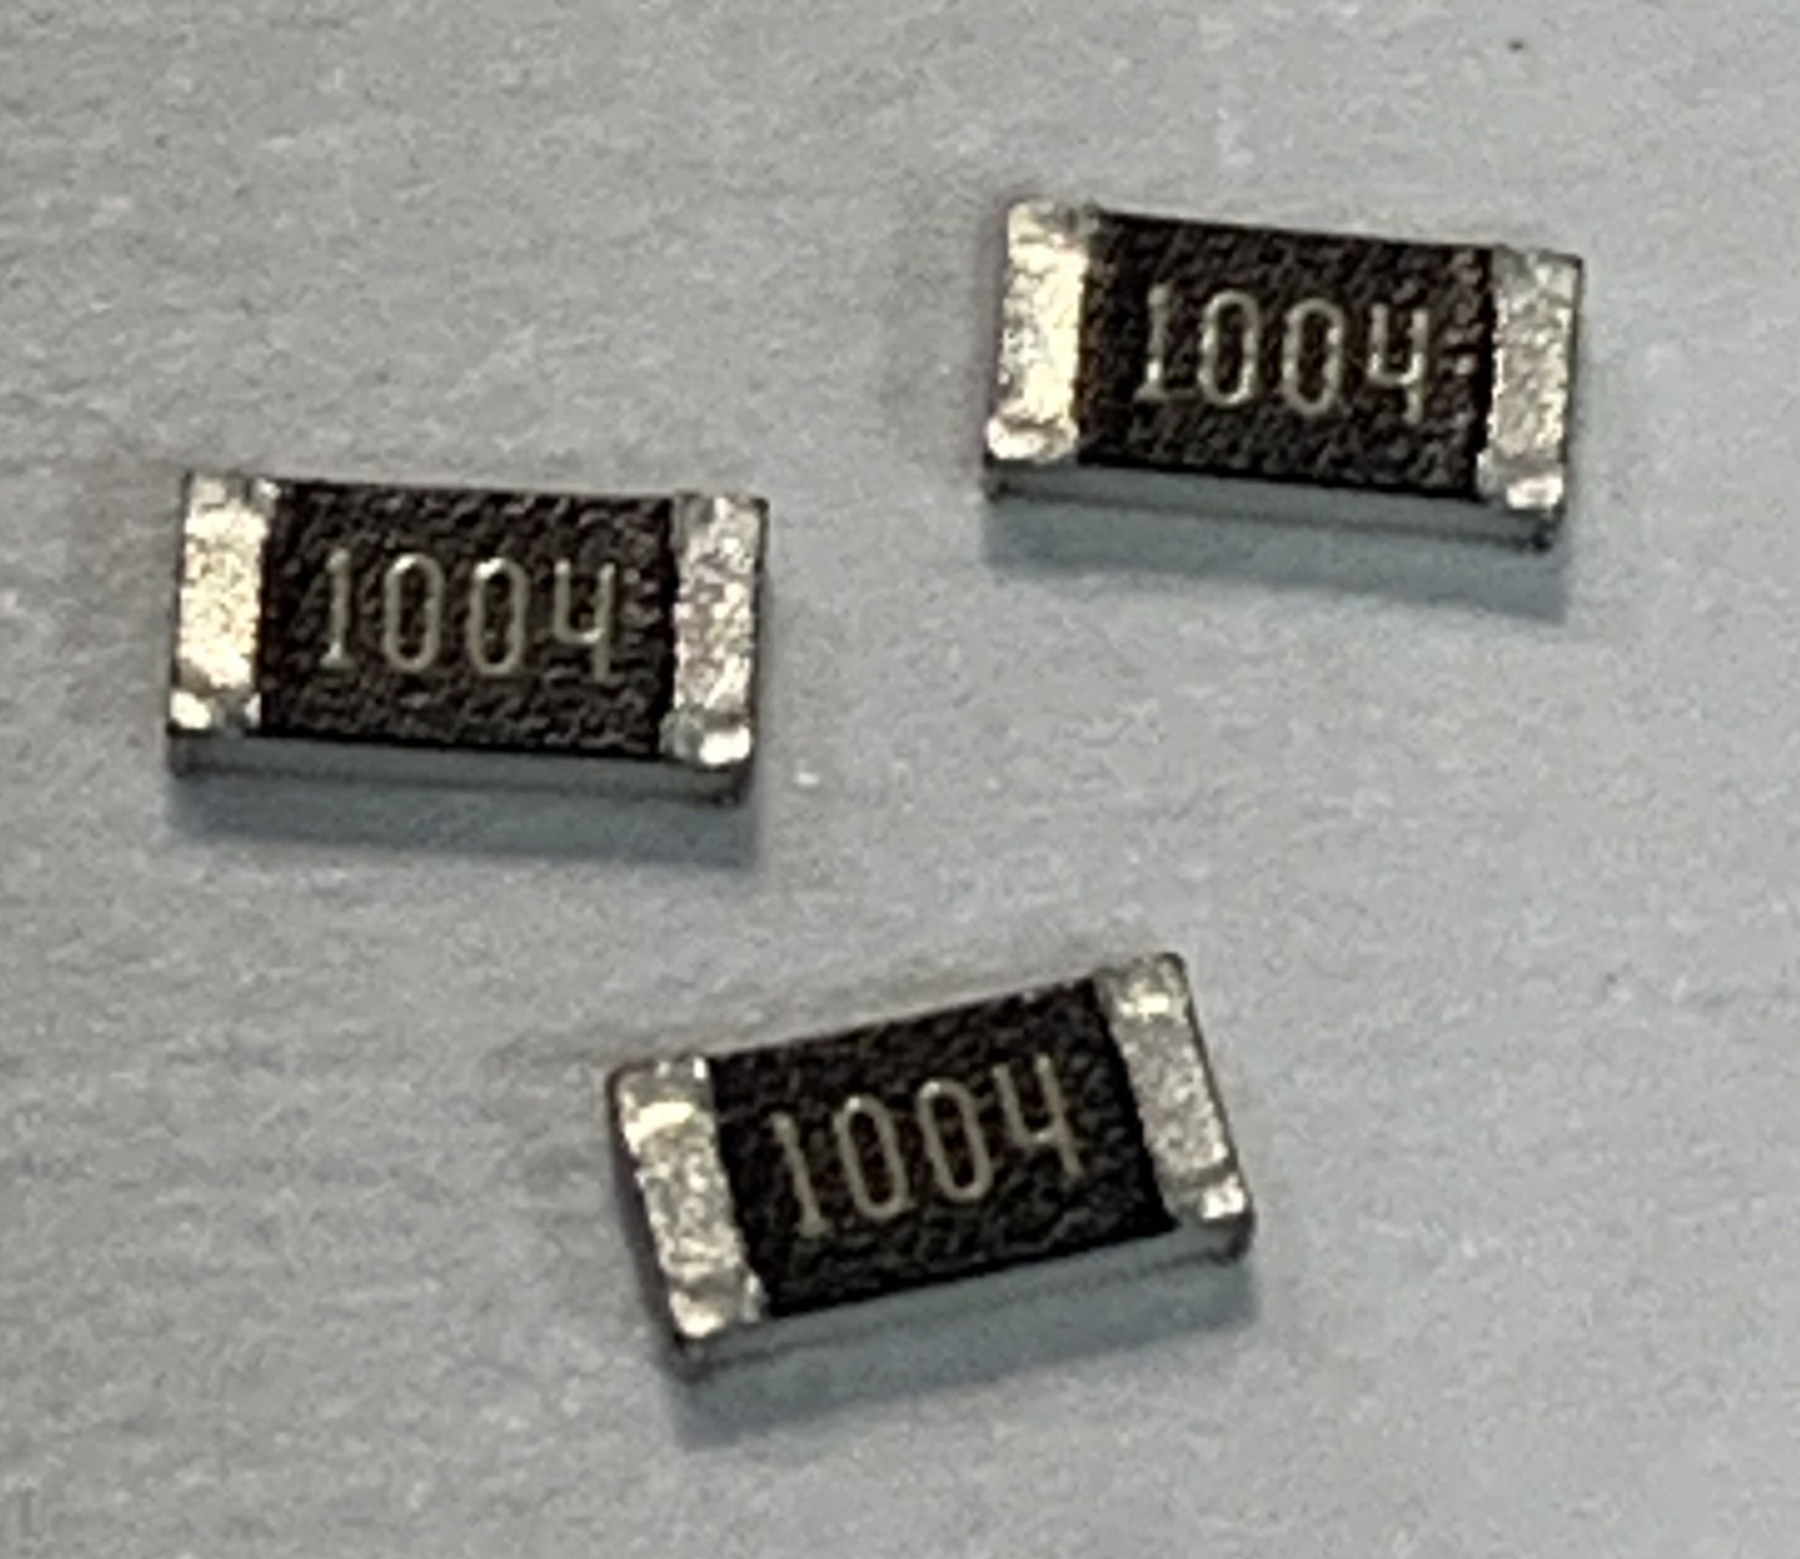 Thin Film Chip Resistors For High Precision Applications